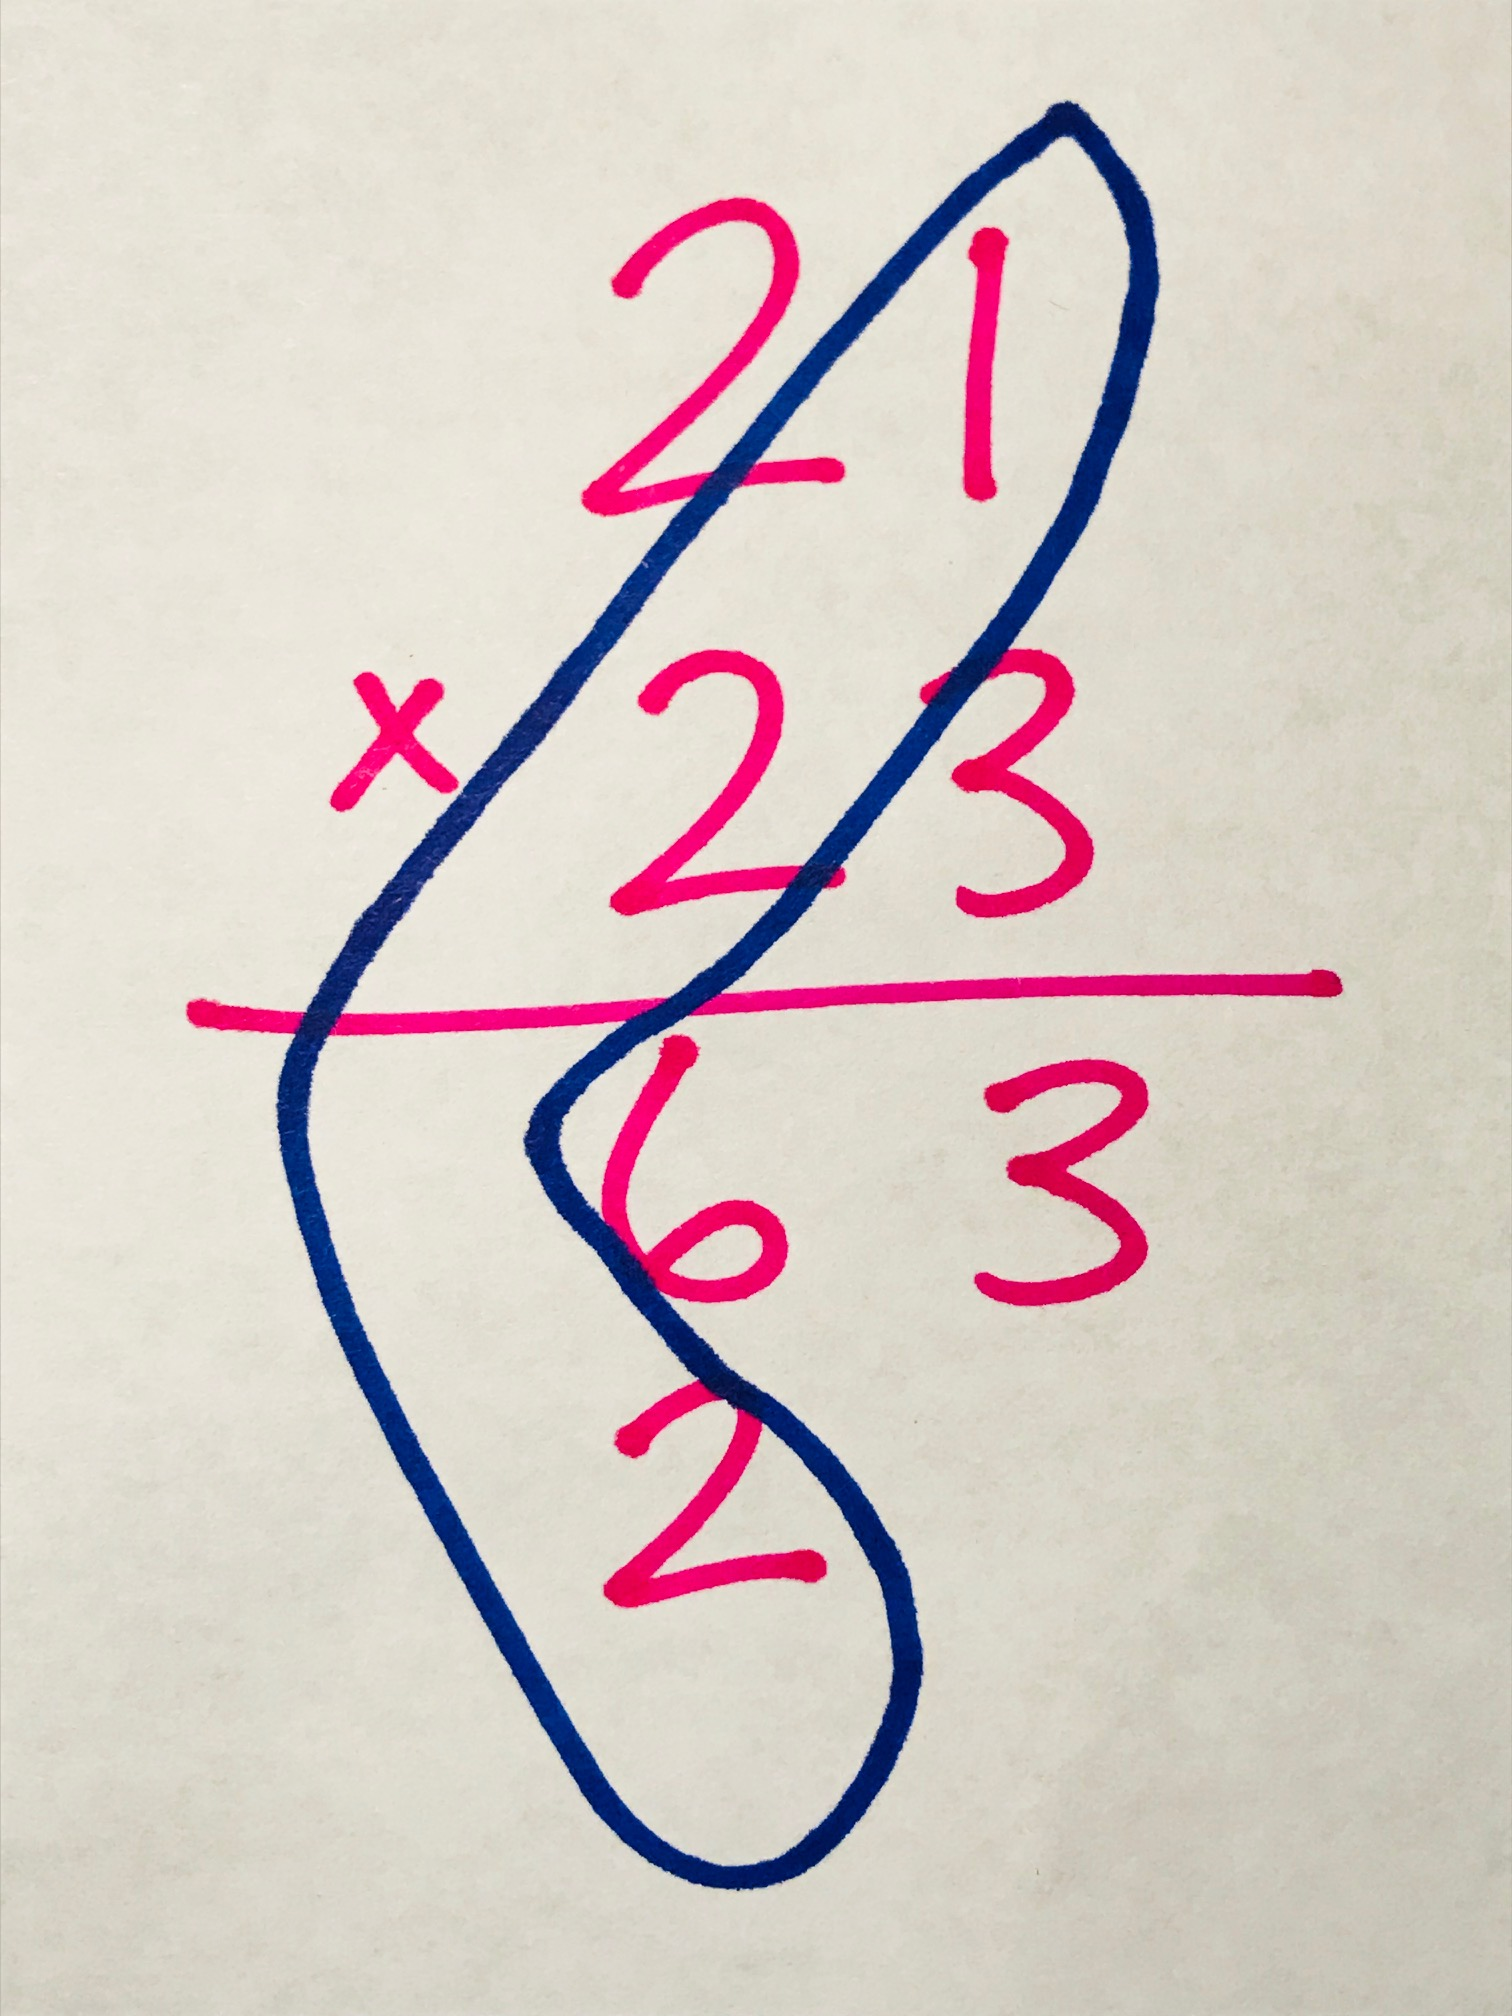 Multiplication 2 x 1